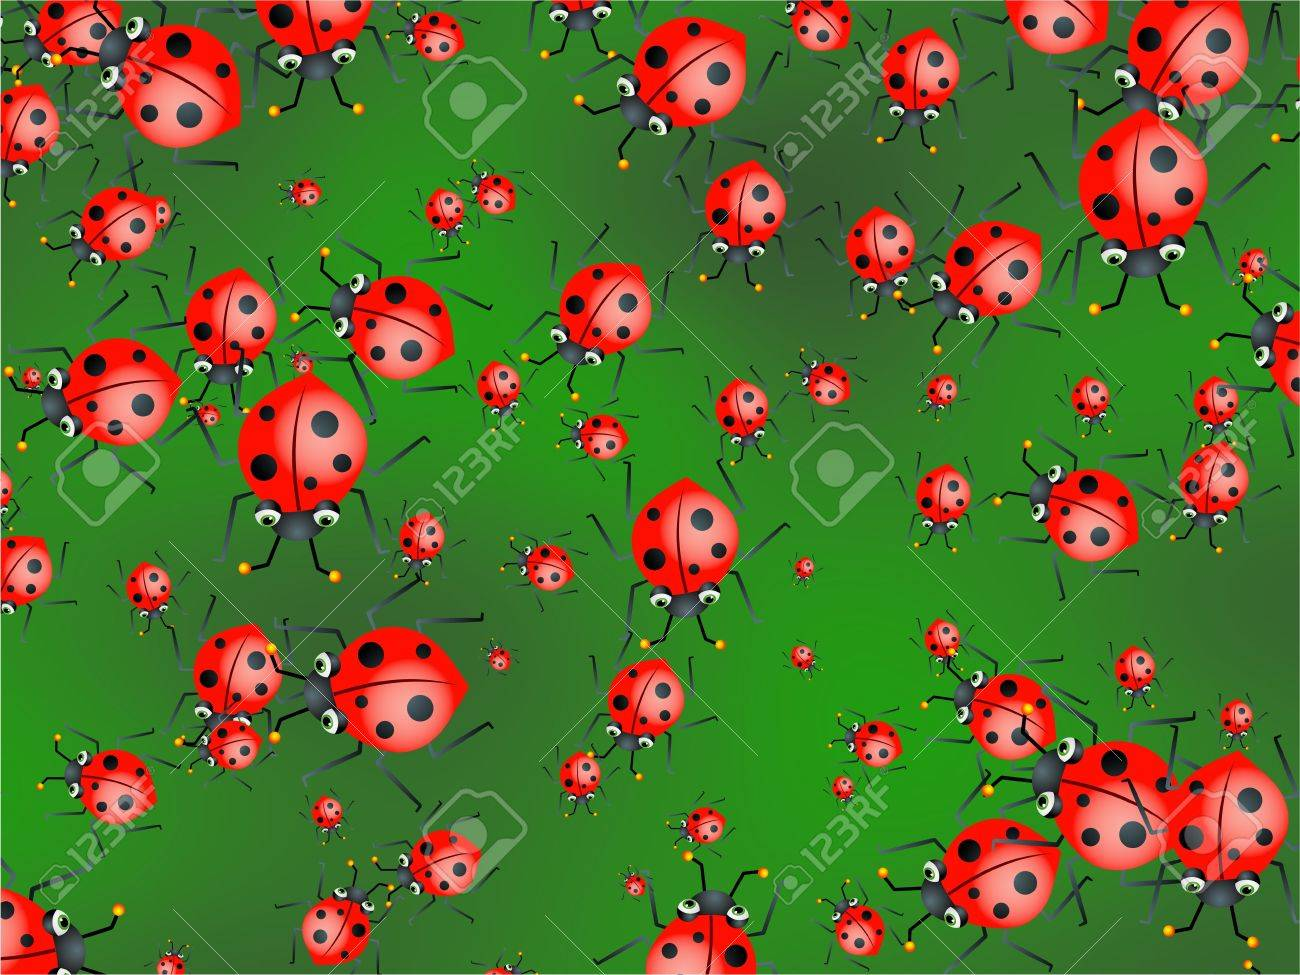 Cute Cartoon Red Ladybug Wallpaper Background Design Stock Photo 1300x975